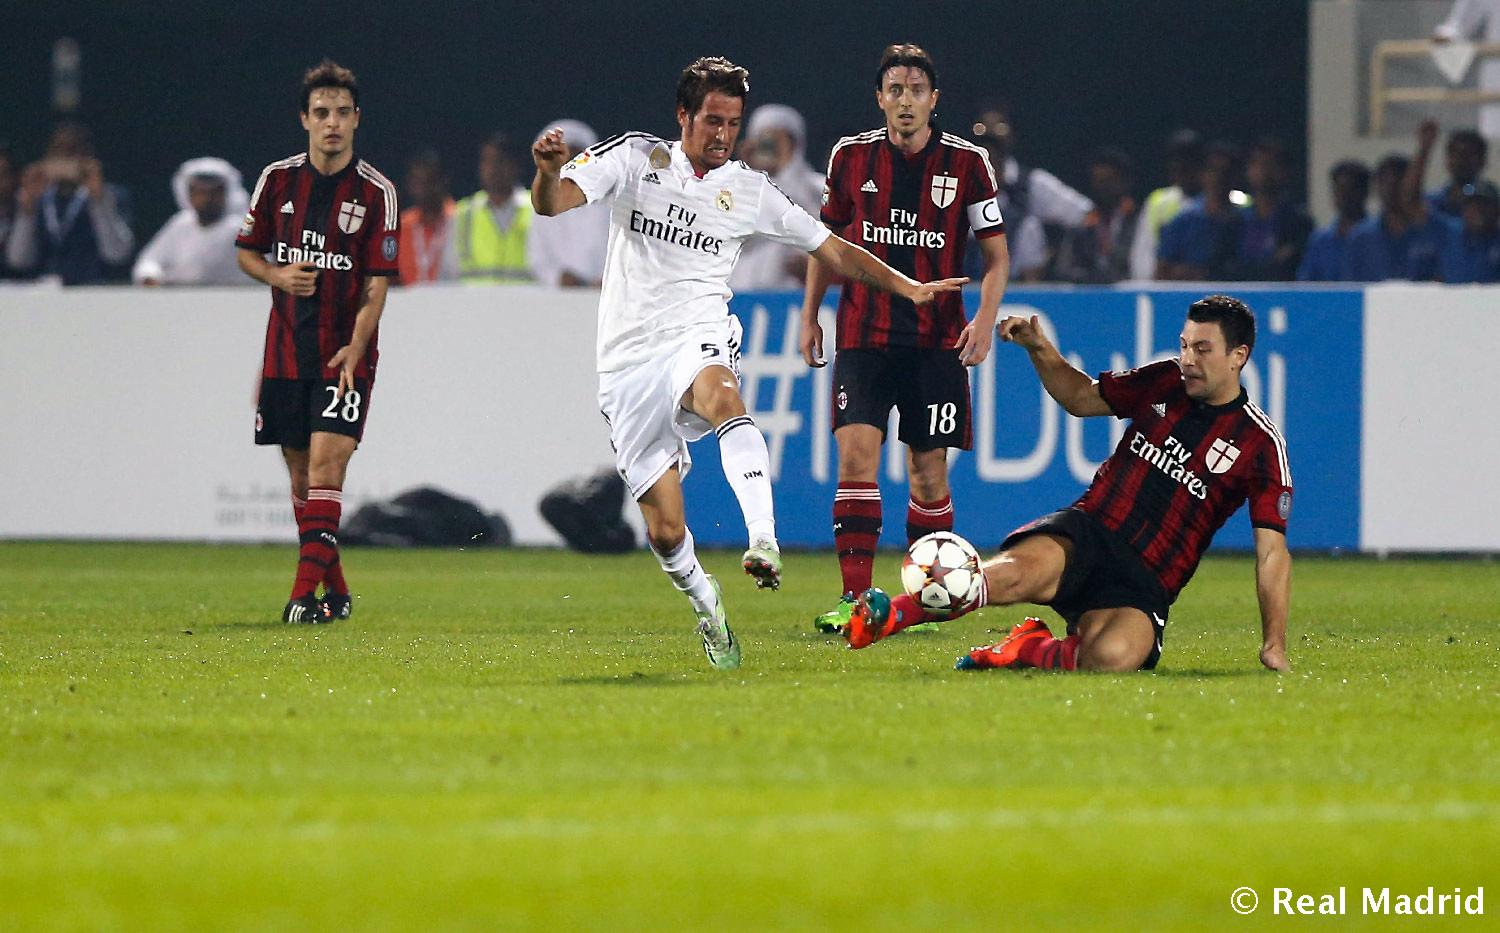 Real Madrid - Real Madrid - Milan - 30-12-2014